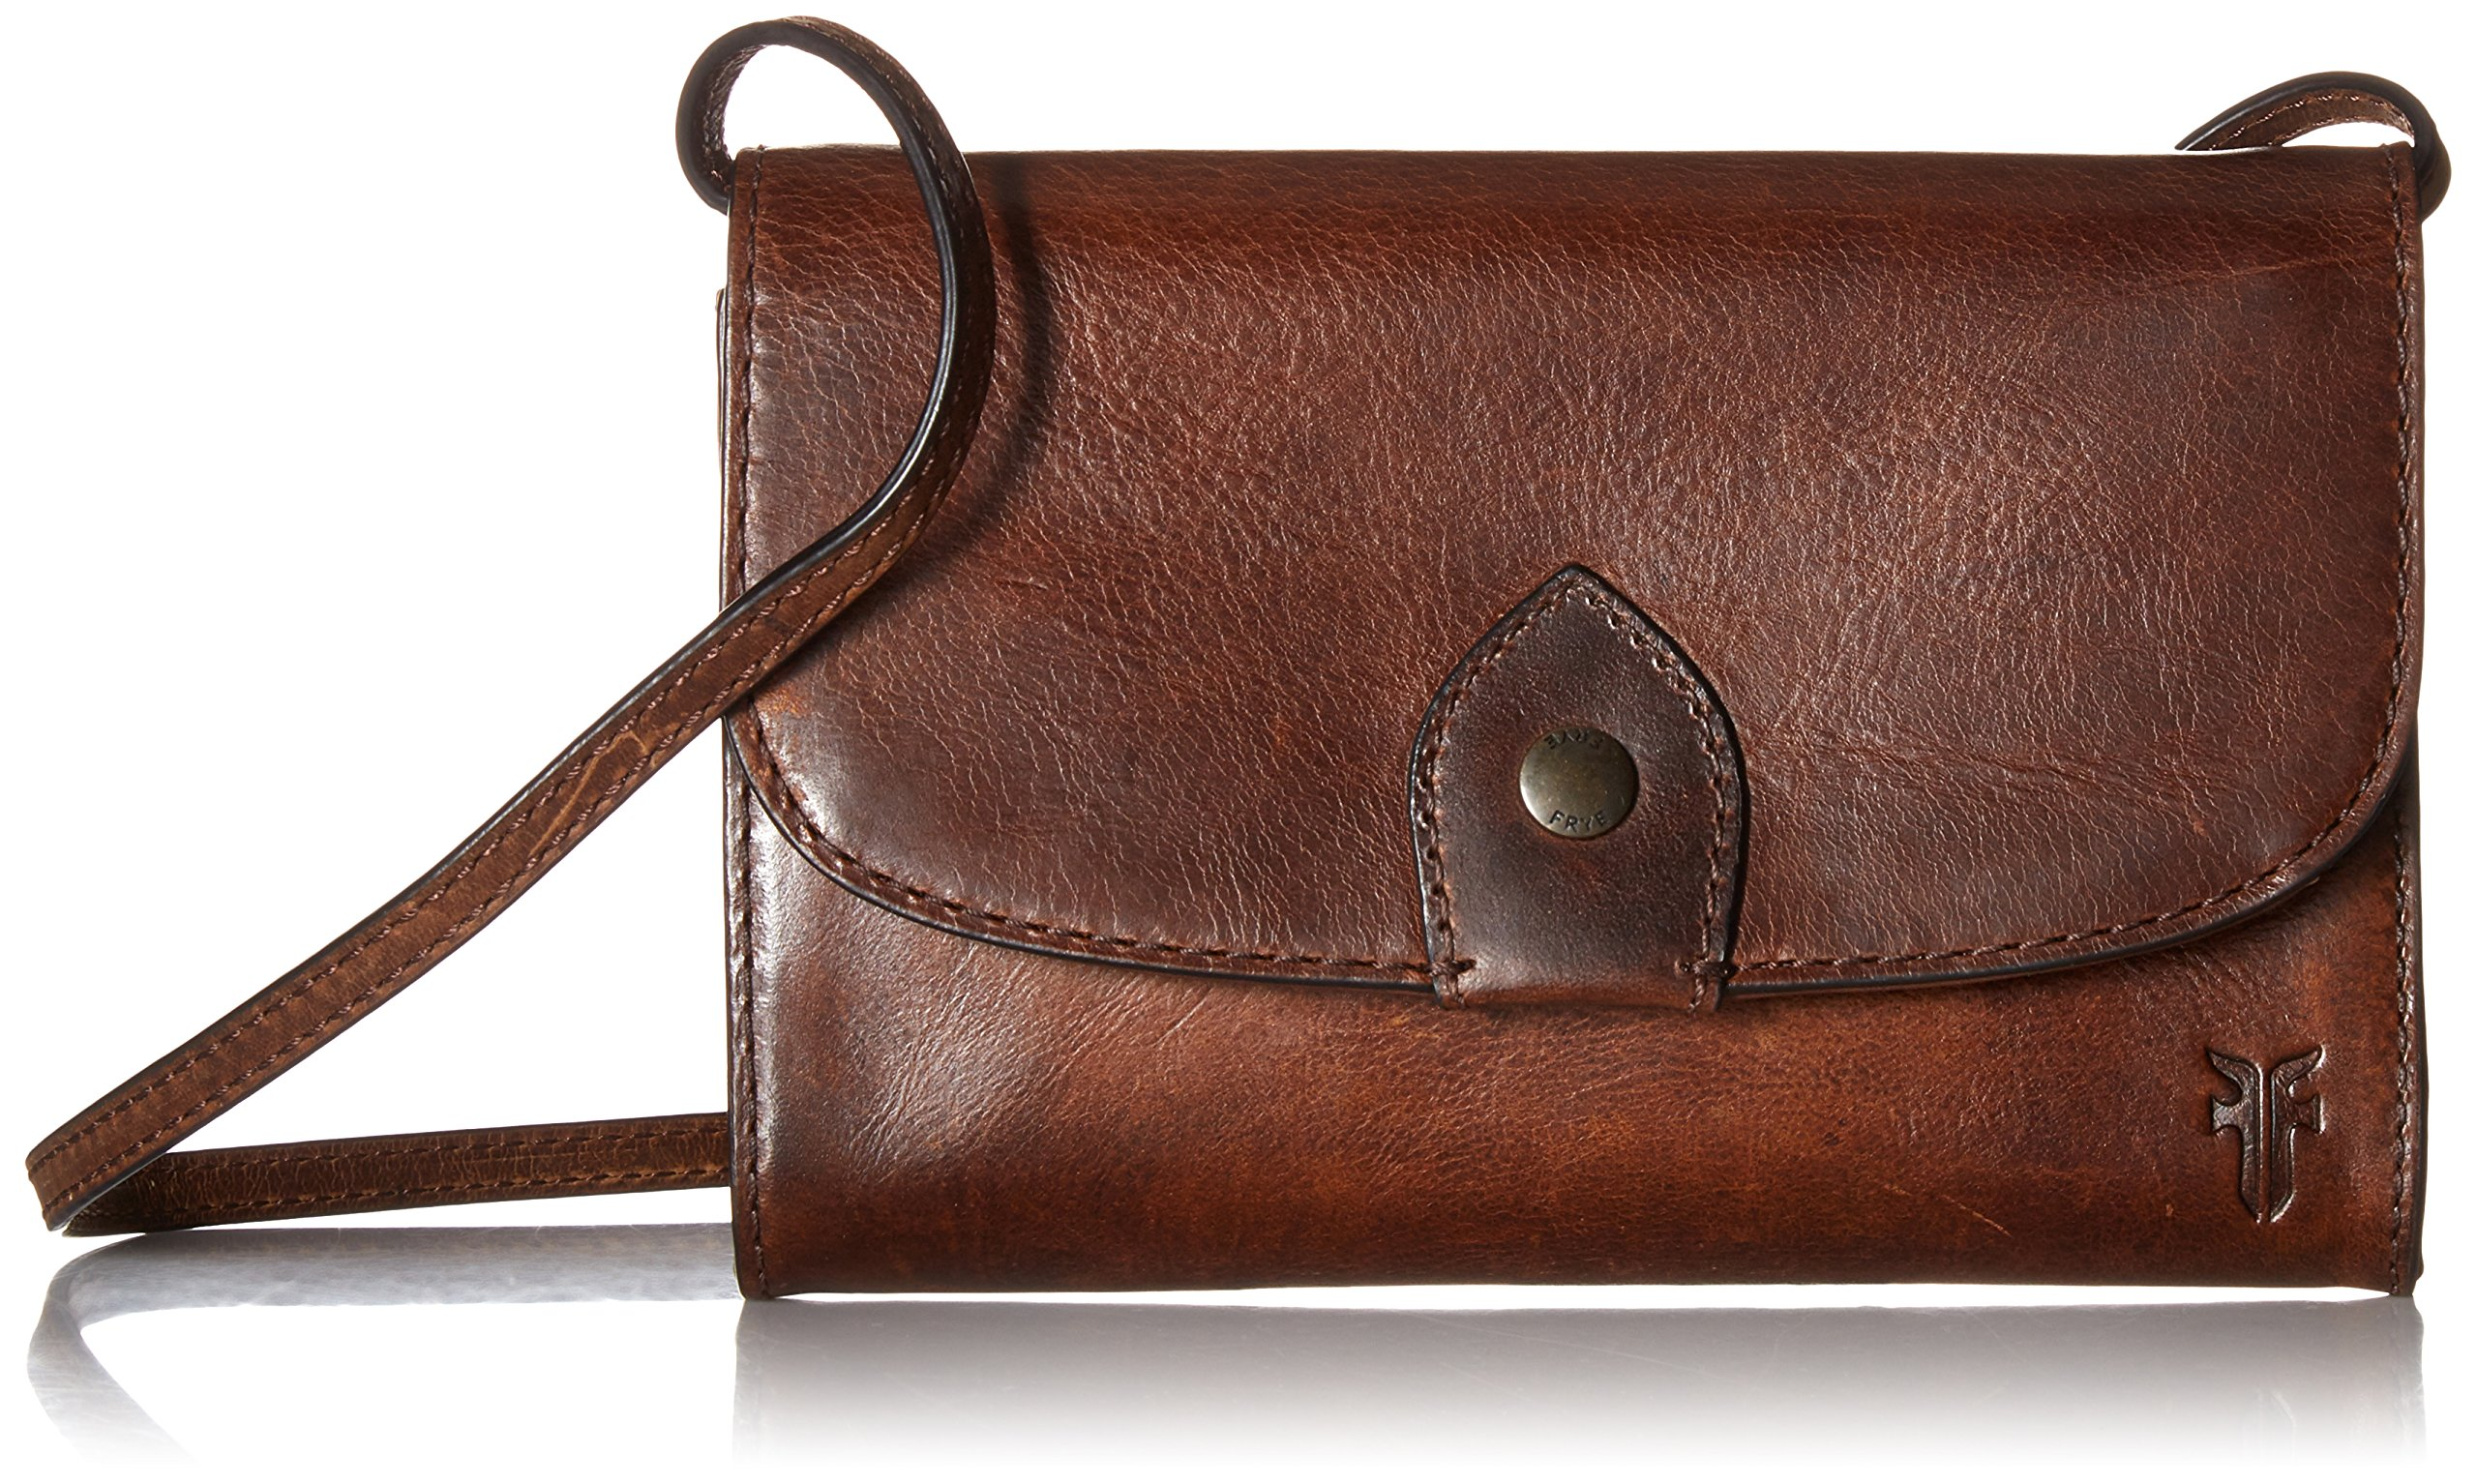 Melissa Wallet Crossbody Clutch Leather Bag